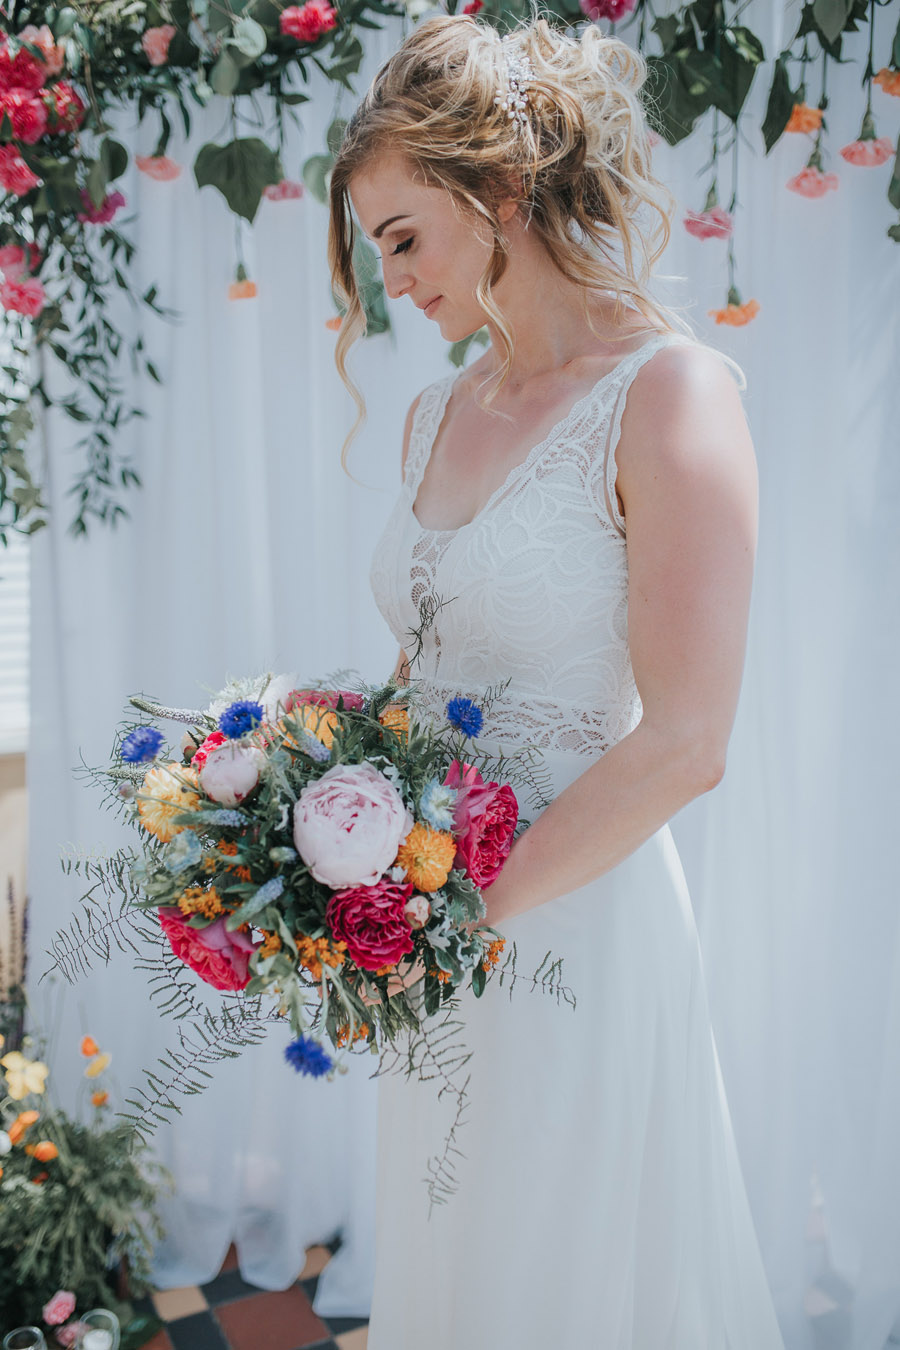 Bright, whimsical, boho wedding styling ideas with balloons, images by Sarah Maria Photography (19)